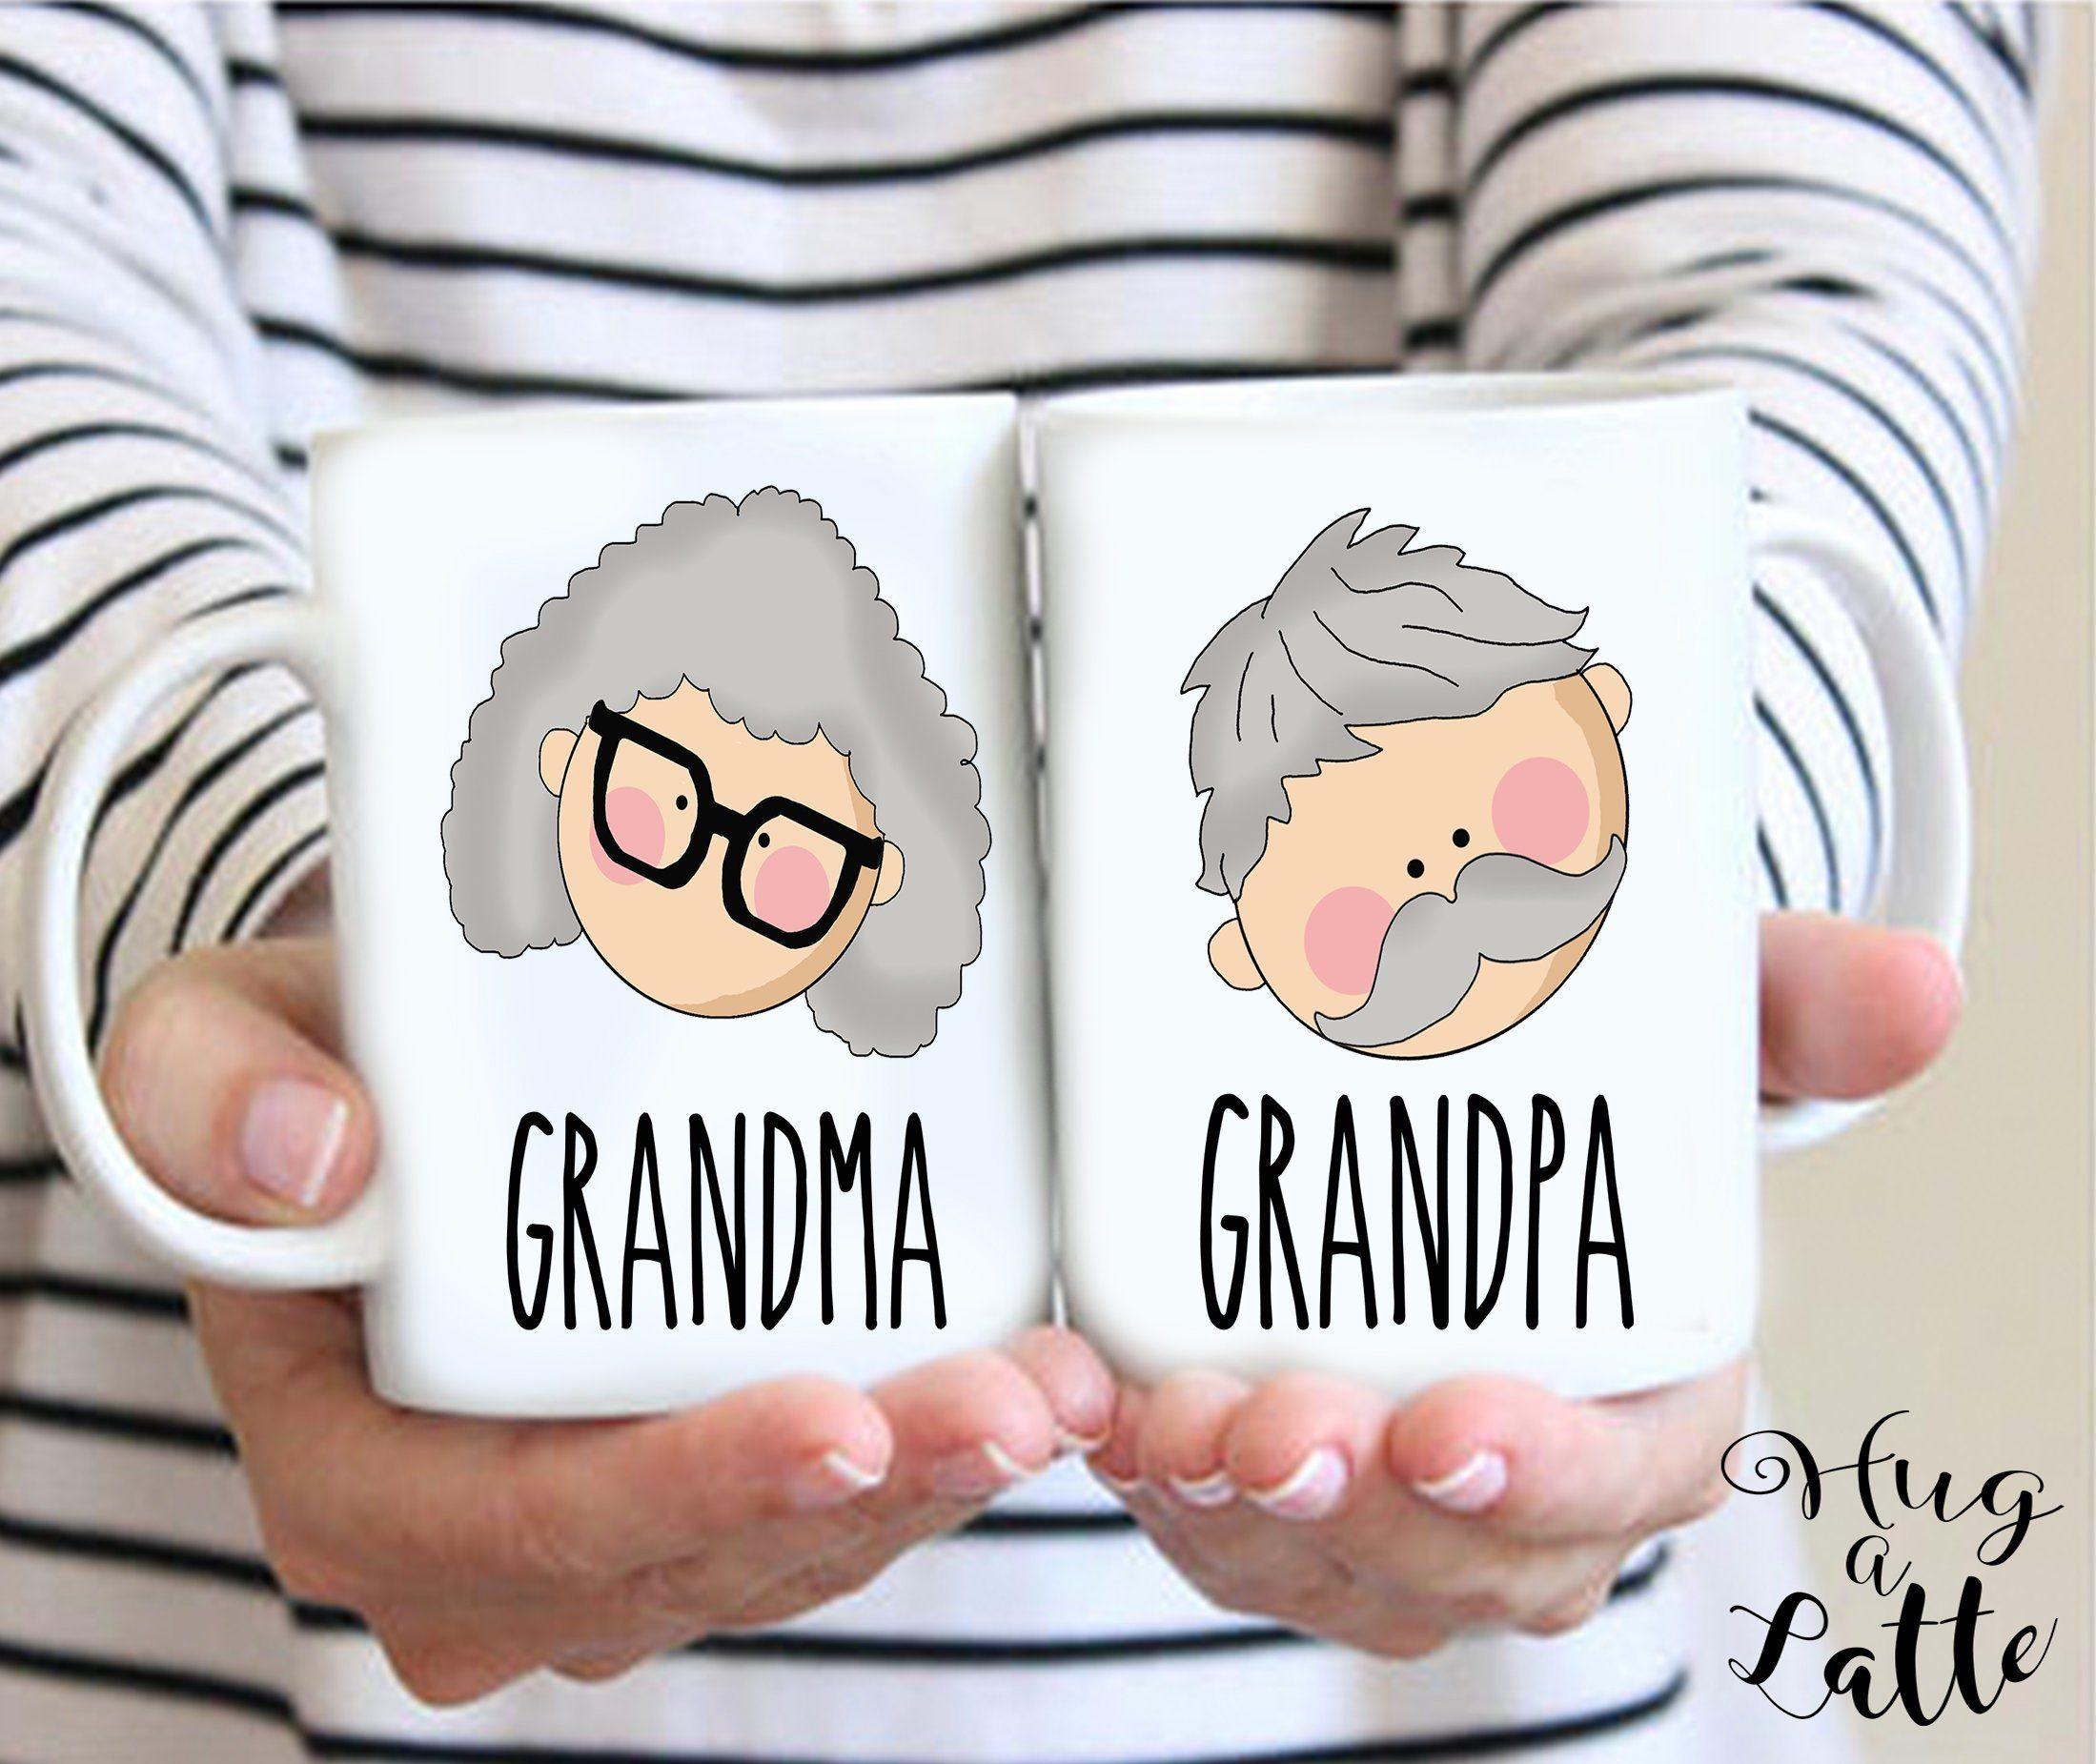 Explore fun and engaging Grandparents day activities crafts amp song ideas for children of all ages including toddlers preschoolers and kindergarten kids